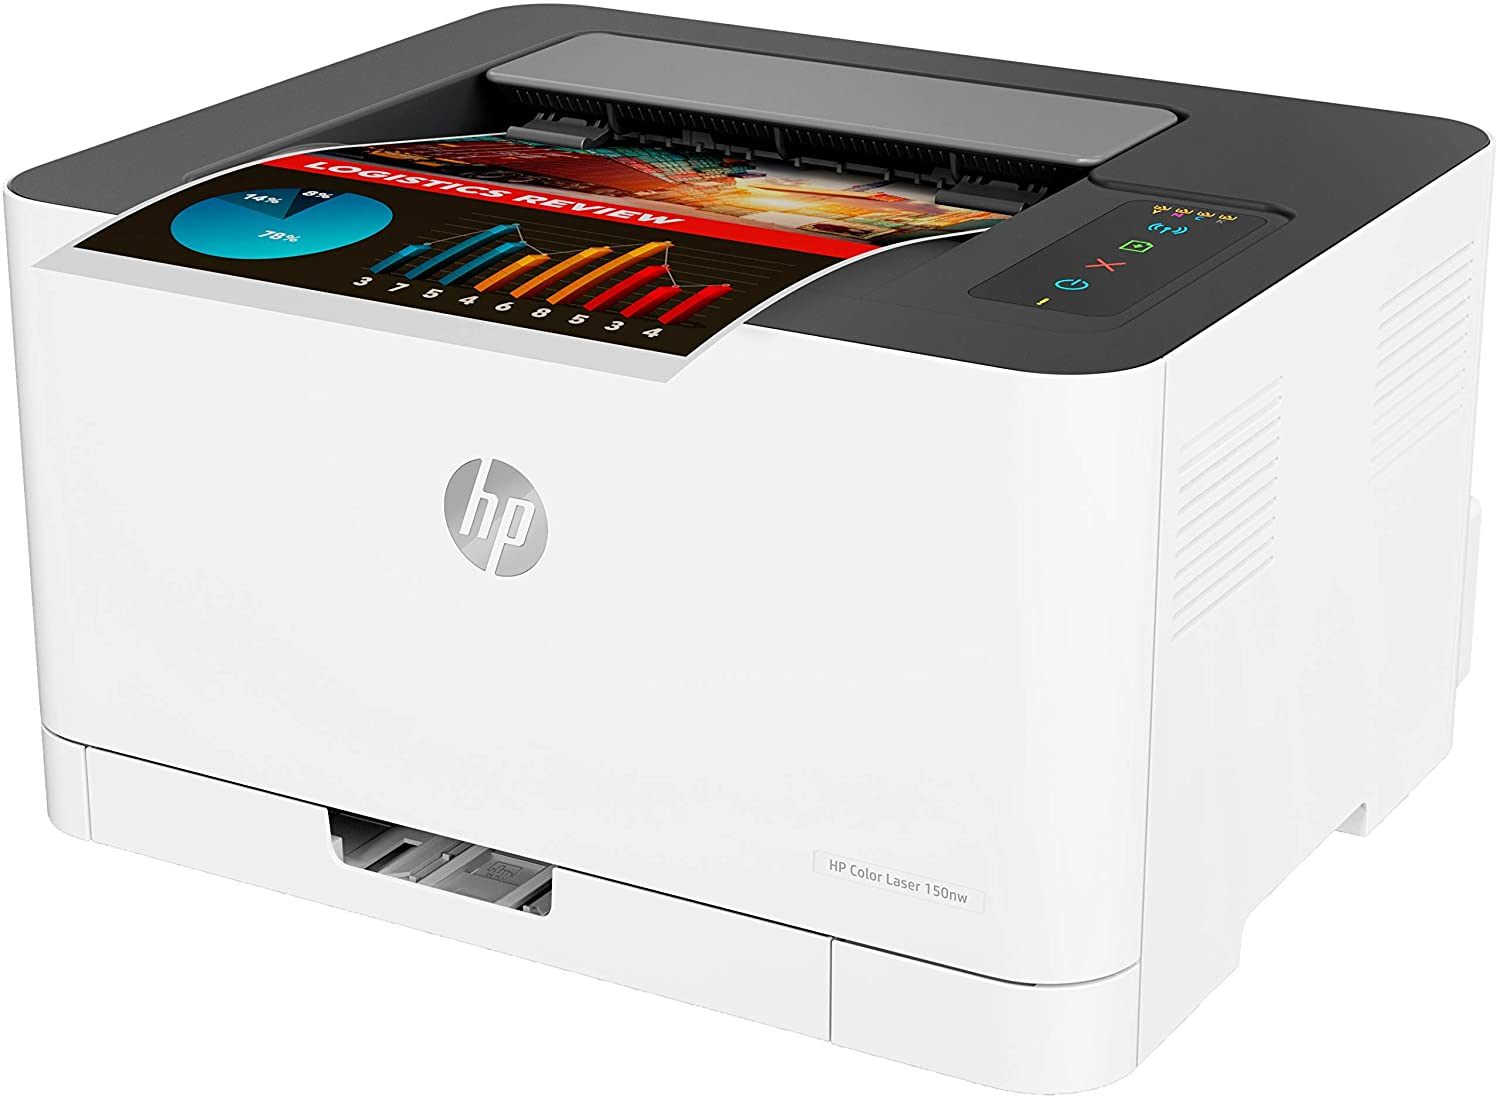 HP 150nw - Impresora Láser (WiFi Direct, 8 ppm Negro (A4), 4 ppm Color (A4), Apple AirPrint, Bandeja de Salida de 50 Hojas, LED, USB 2.0) Blanco